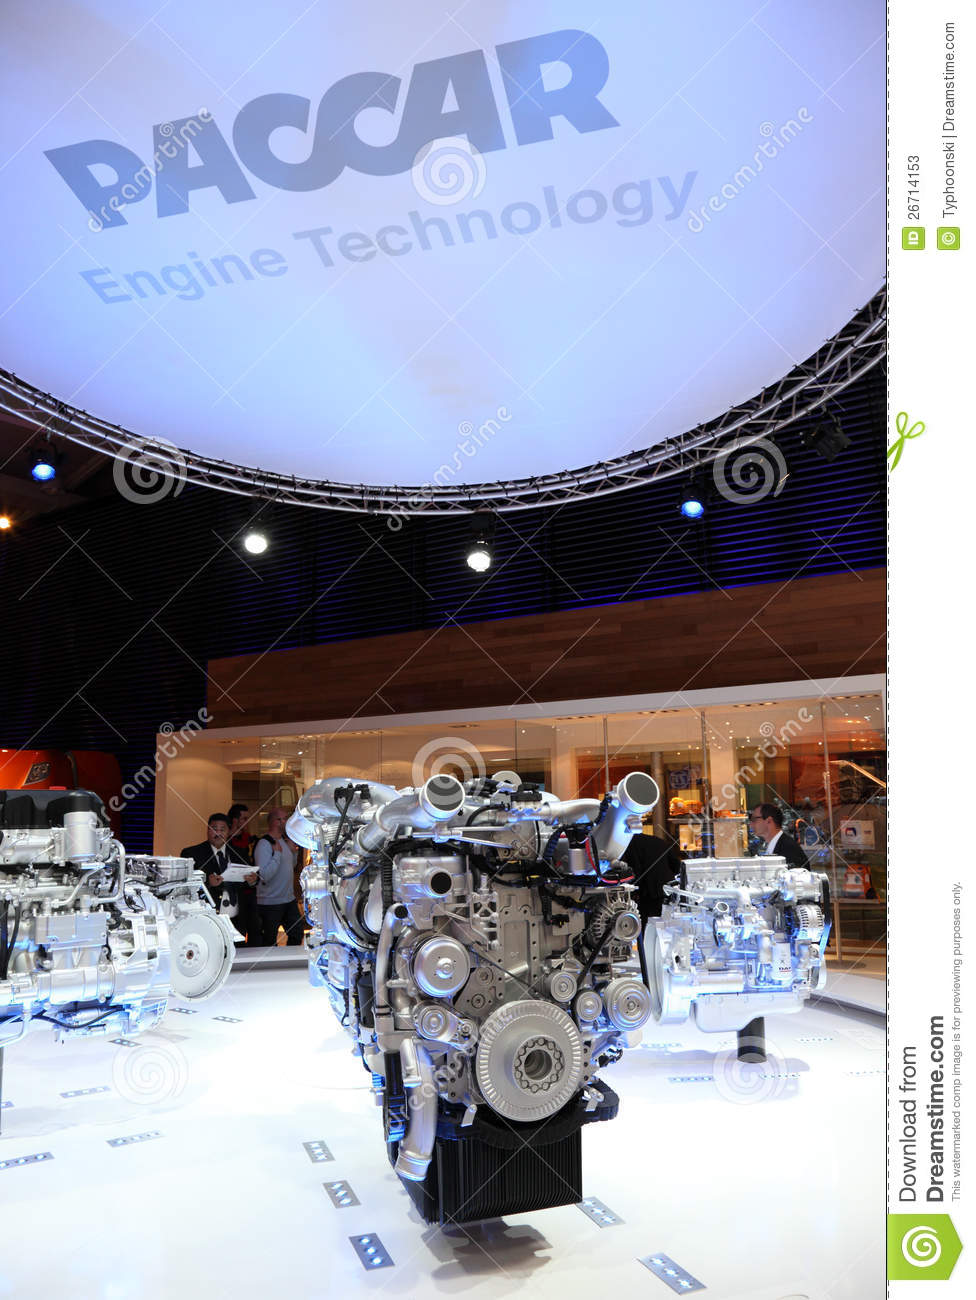 New Paccar Diesel Engines Editorial Stock Photo